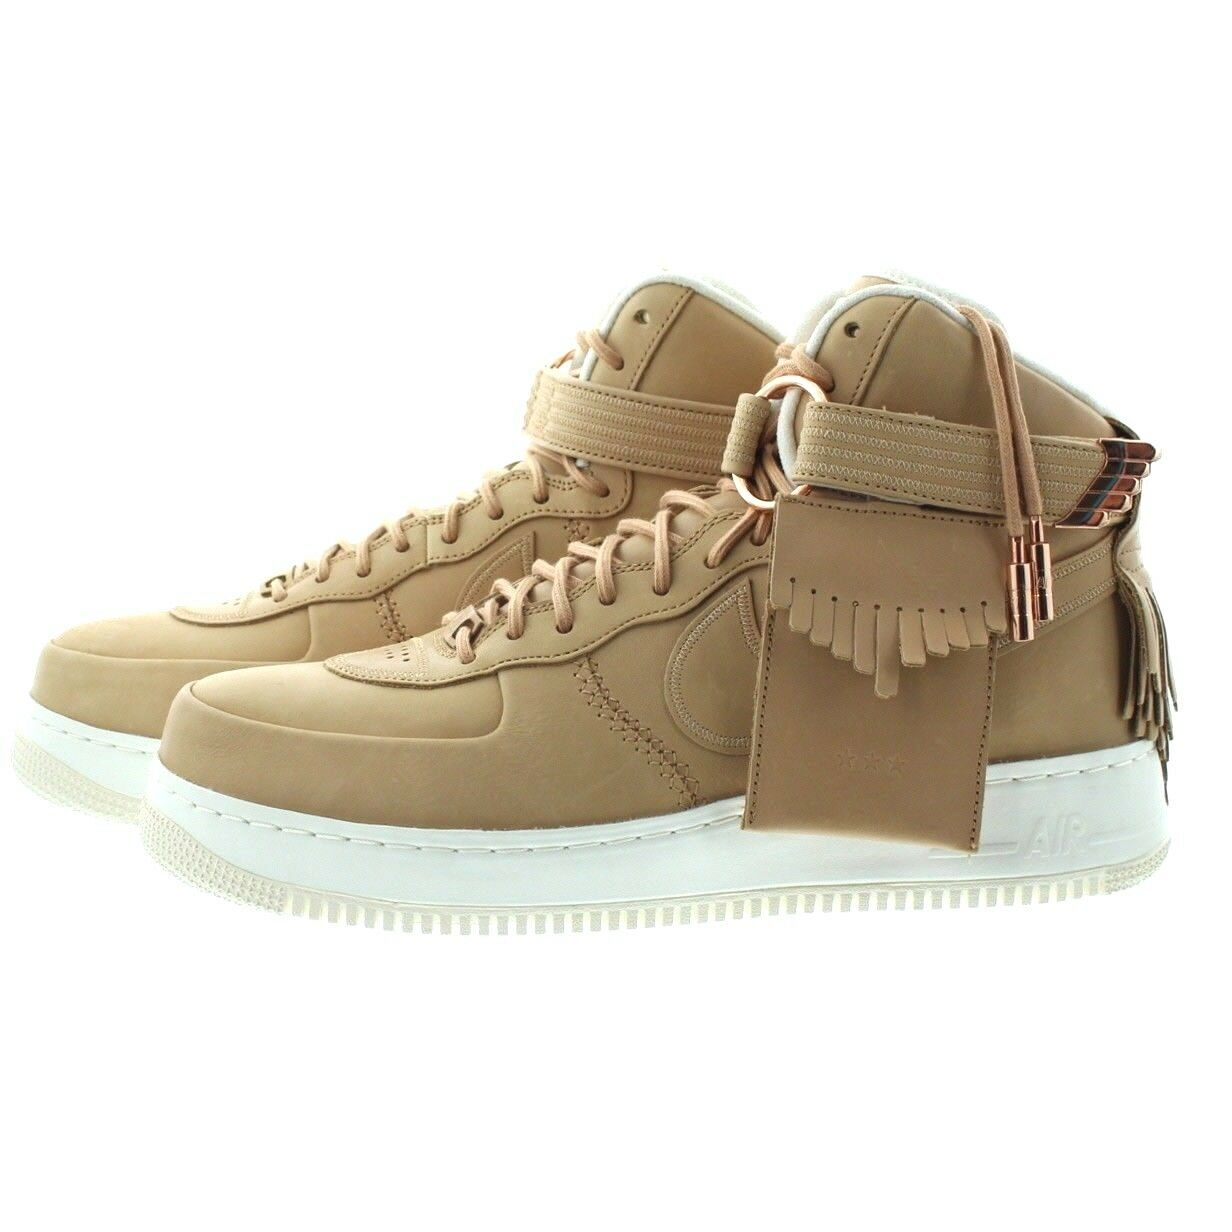 Nike 919473 200 Mens Air Force 1 High Top Tassel Basketball shoes Sneakers